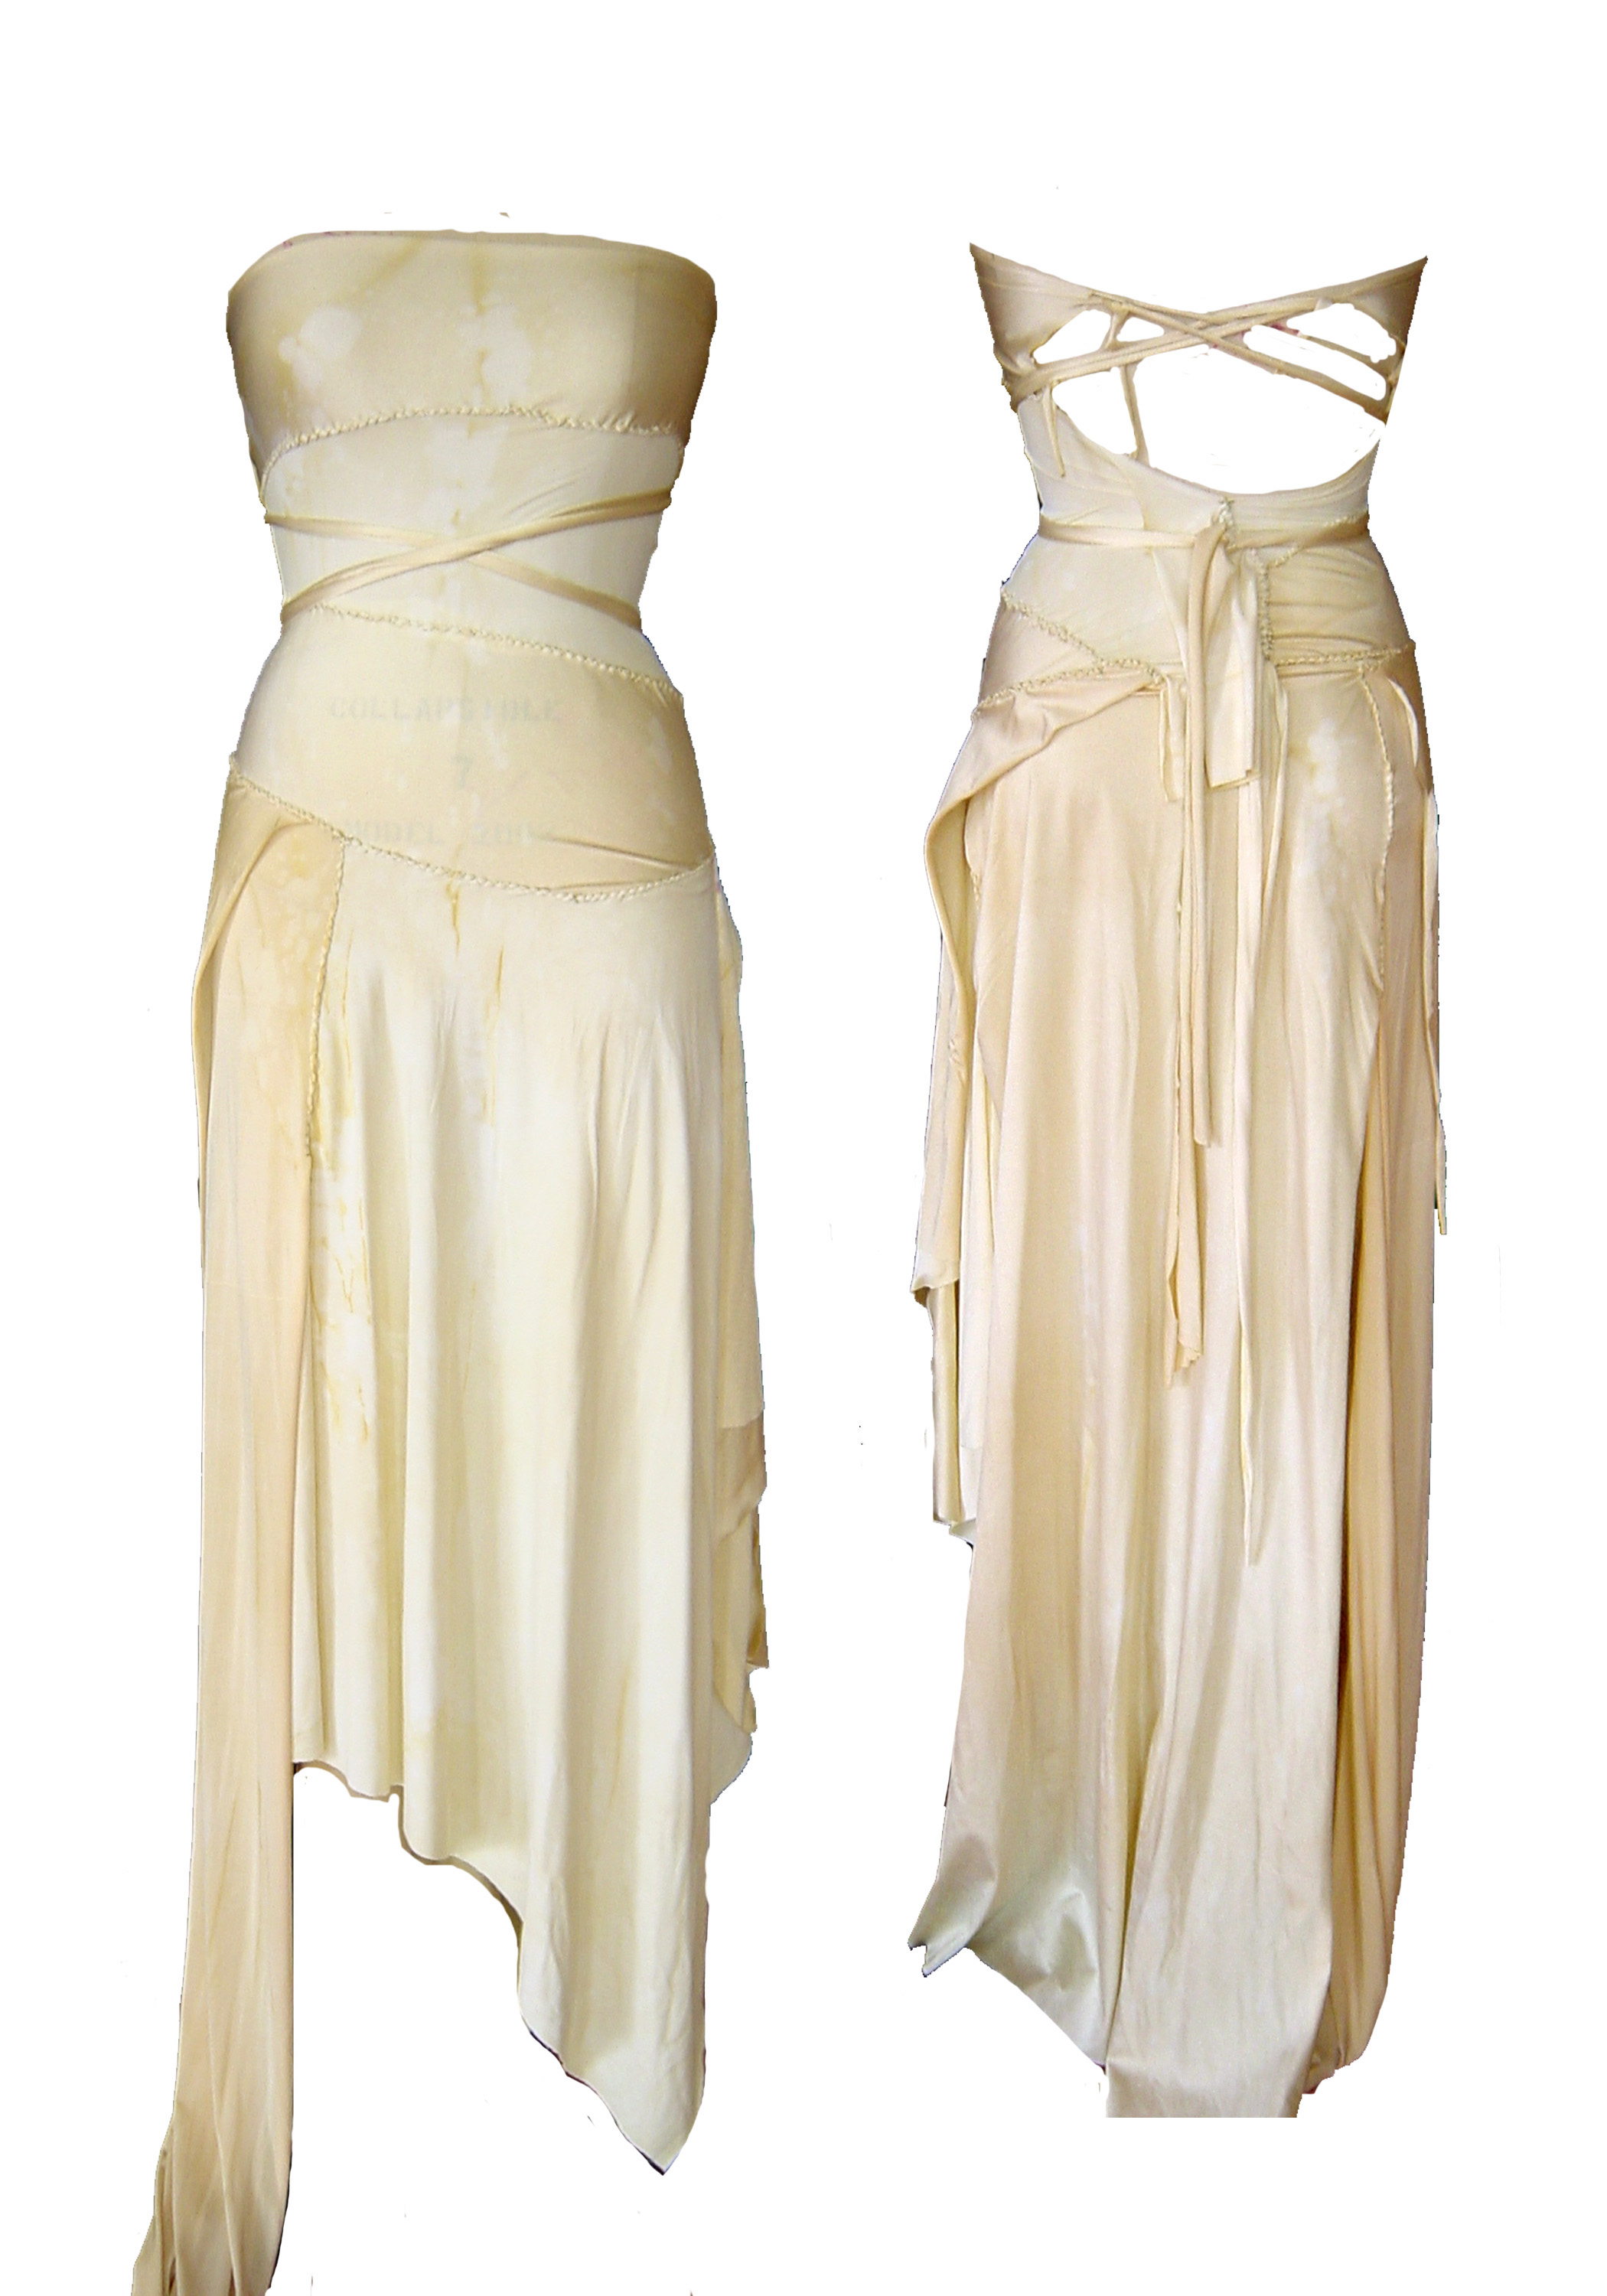 yellow strapless panel gown copy.jpg